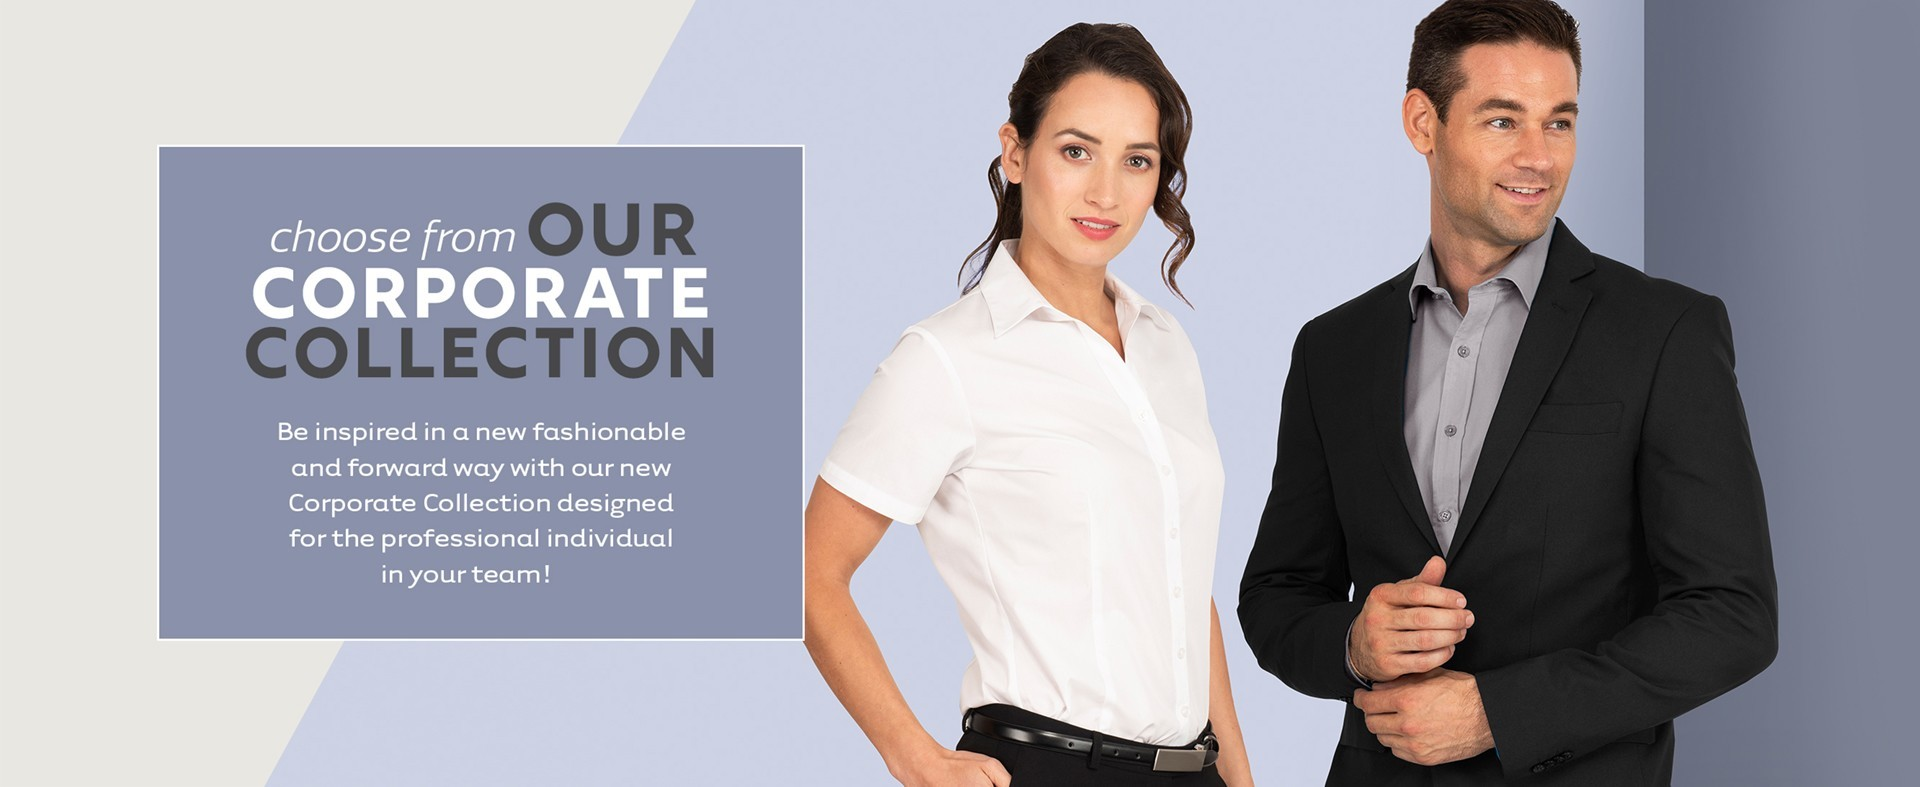 Corporate Uniforms from Muhan Corporate